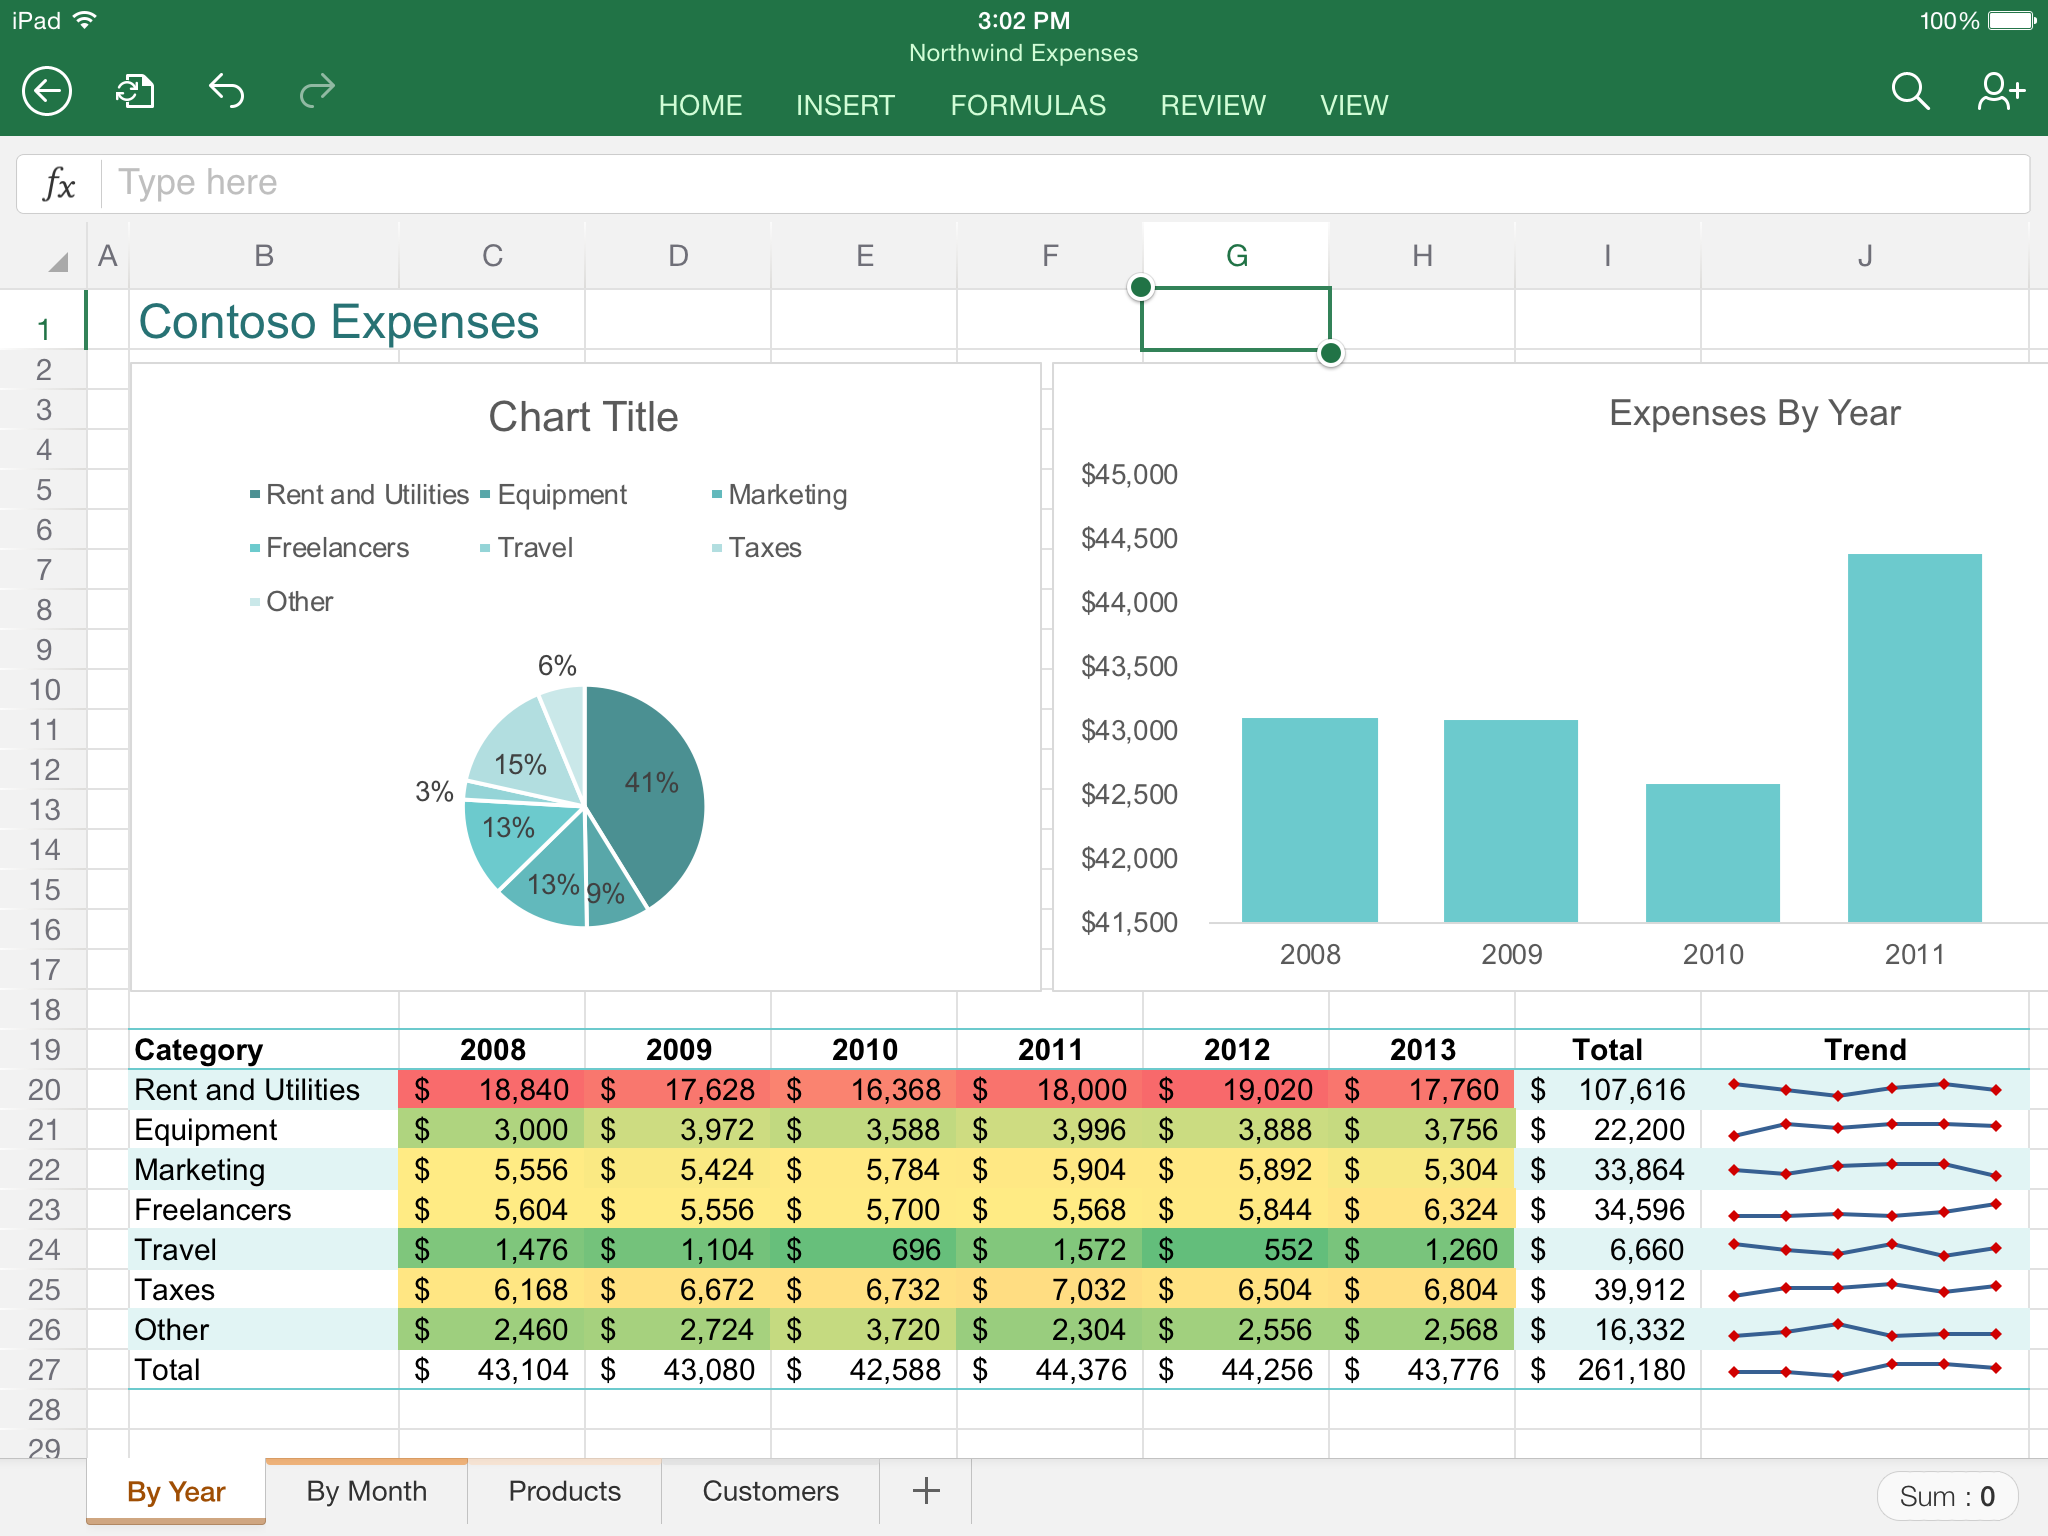 Ediblewildsus  Stunning App Highlight Excel  Mobile Digital Now With Interesting Excel In Action With Extraordinary What Type Of Software Is Microsoft Excel Also Frequency Graph Excel In Addition Usa City Names List Excel And How To Change Pdf To Excel Spreadsheet As Well As Free Mapping Tool Excel Additionally Flip Columns And Rows In Excel From Youstonybrookedu With Ediblewildsus  Interesting App Highlight Excel  Mobile Digital Now With Extraordinary Excel In Action And Stunning What Type Of Software Is Microsoft Excel Also Frequency Graph Excel In Addition Usa City Names List Excel From Youstonybrookedu